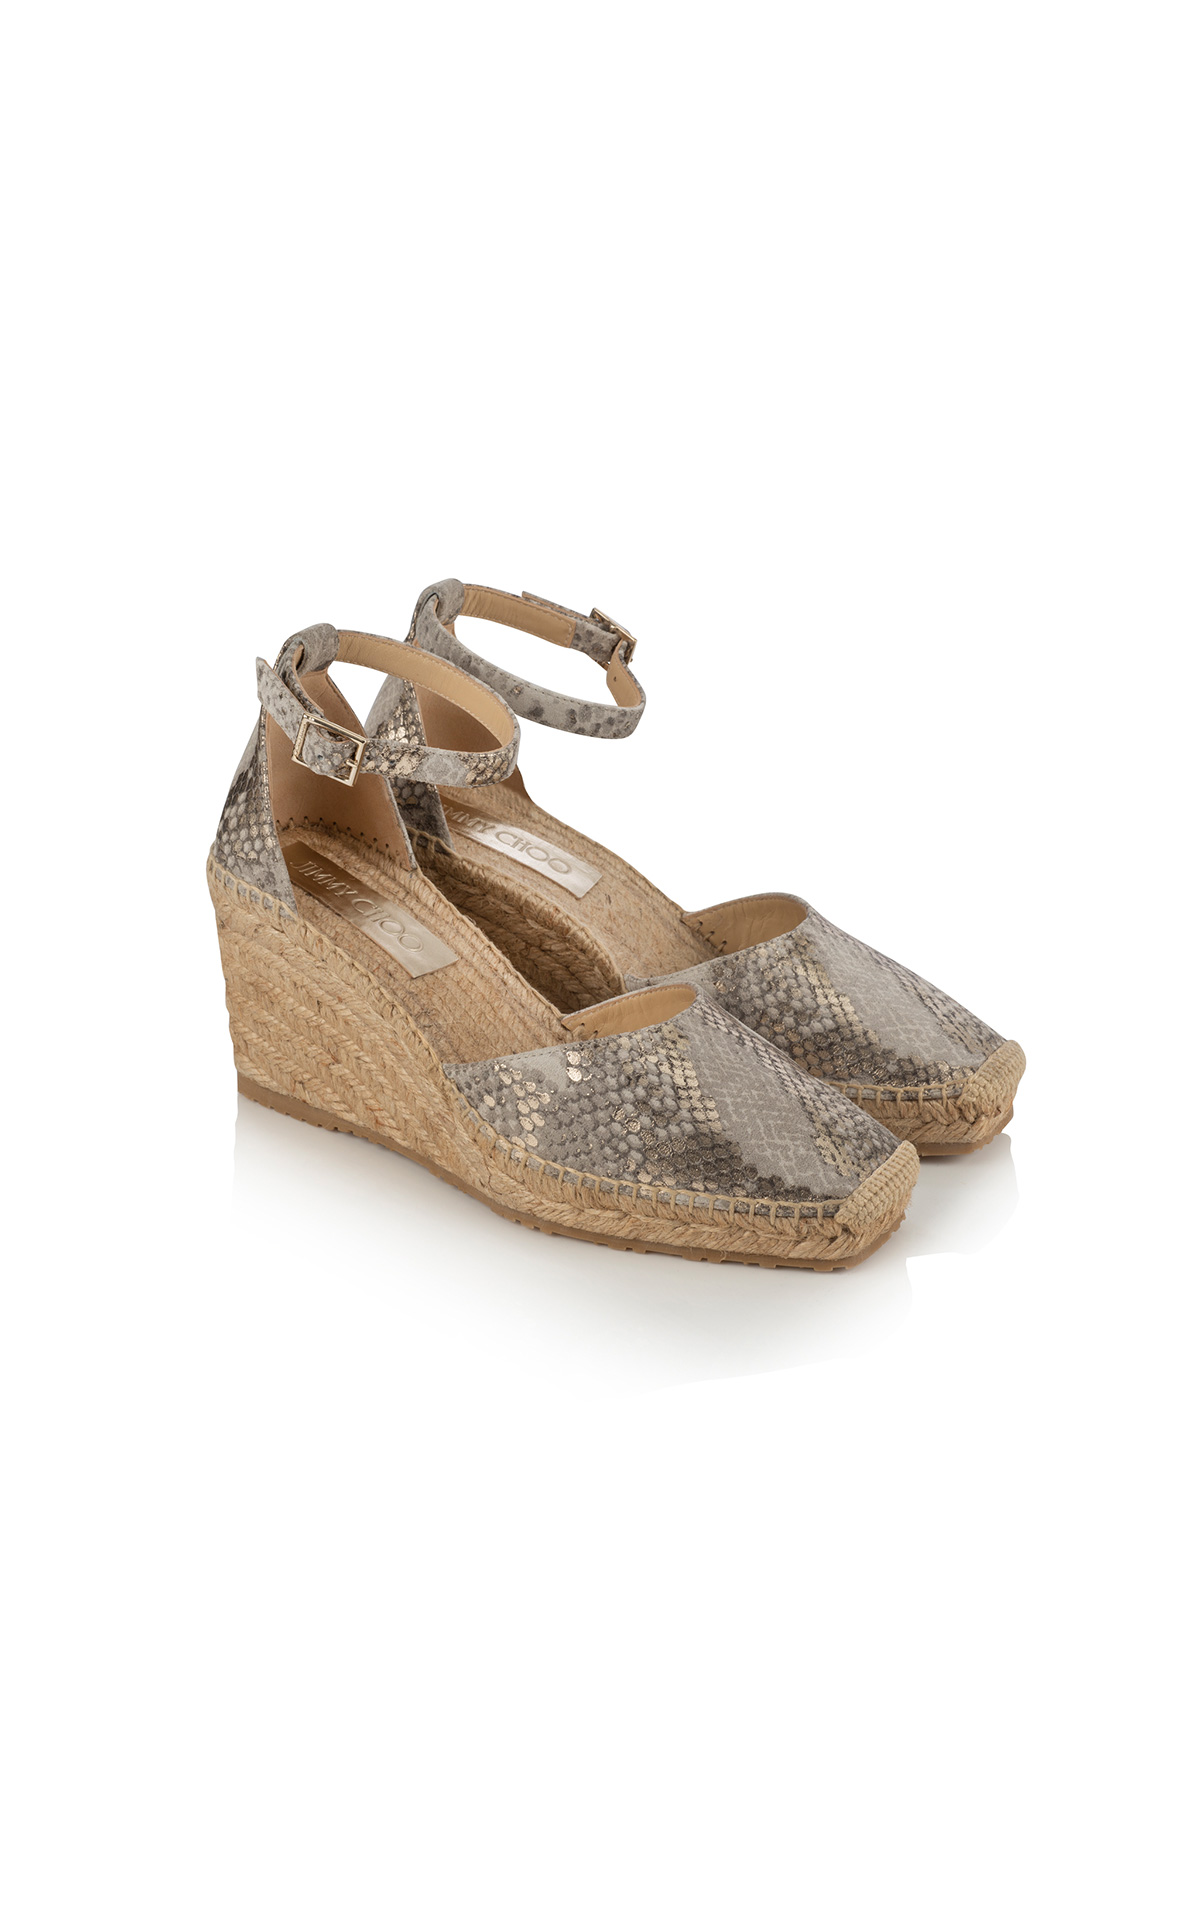 Jimmy Choo Layken 90 in metallic printed suede light khaki at The Bicester Village Shopping Collection